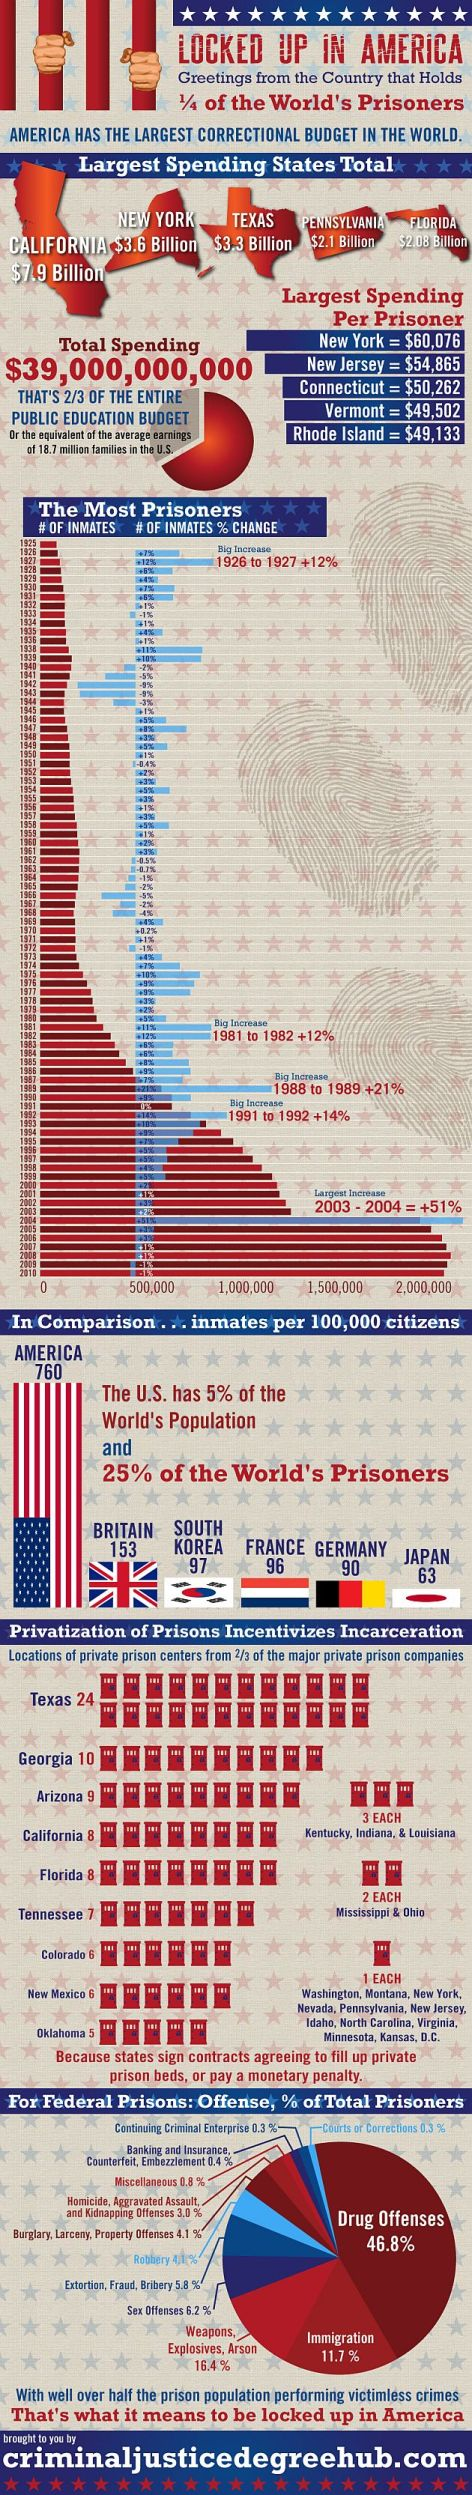 Locked Up In America Greetings From The Country That Holds 25% Of The World's Prisoners